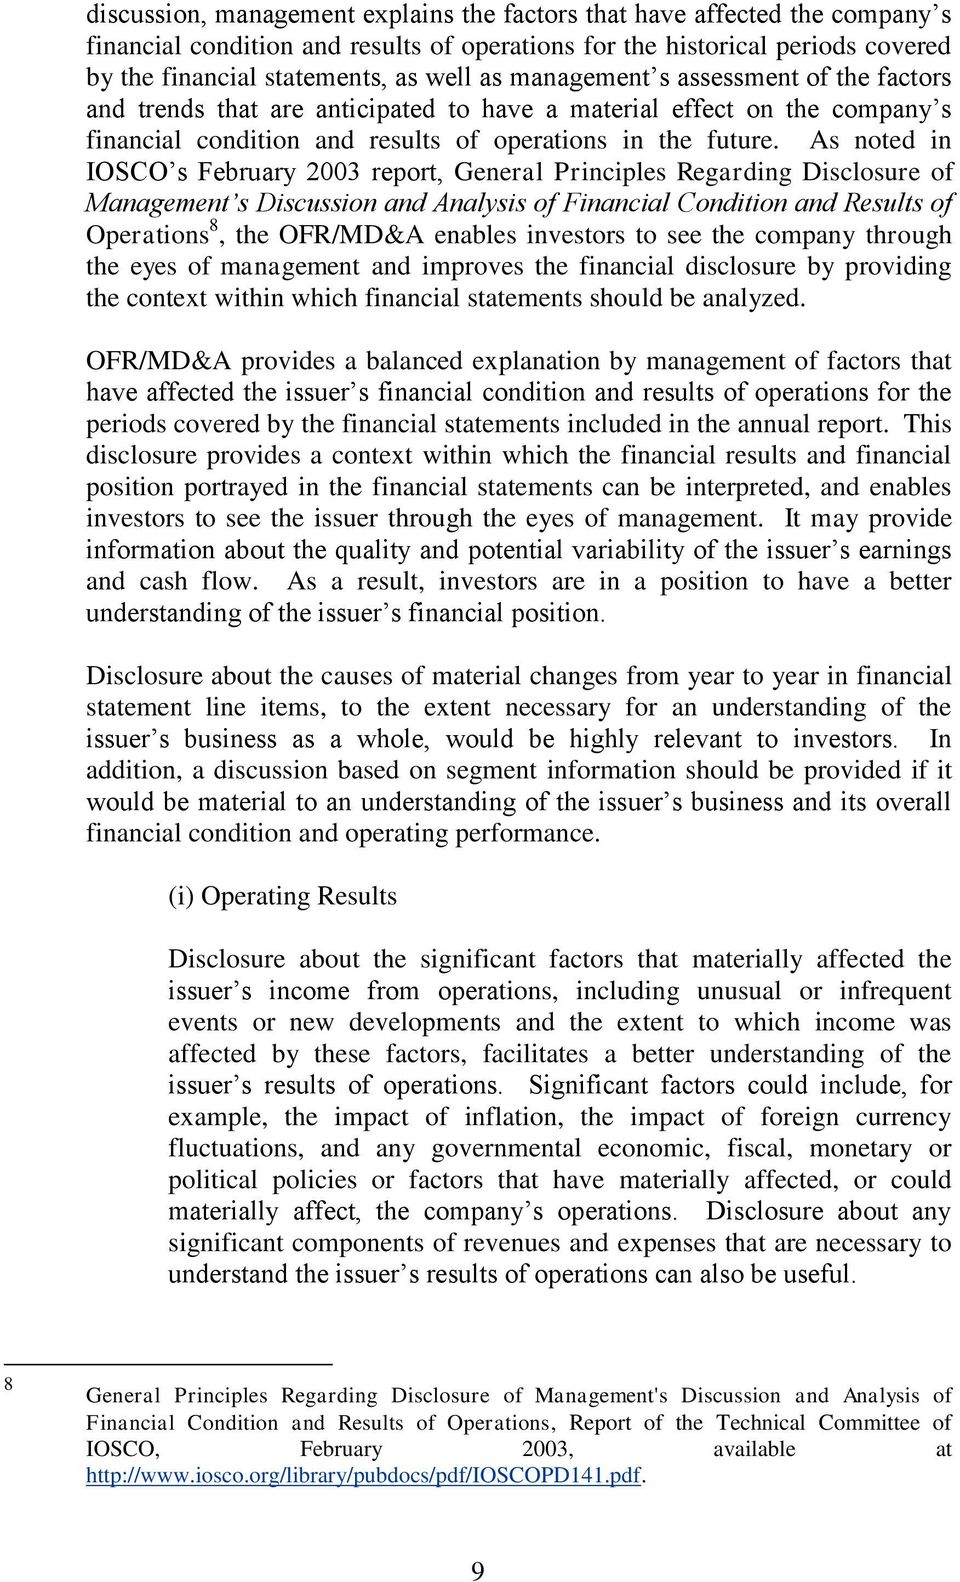 As noted in IOSCO s February 2003 report, General Principles Regarding Disclosure of Management s Discussion and Analysis of Financial Condition and Results of Operations 8, the OFR/MD&A enables